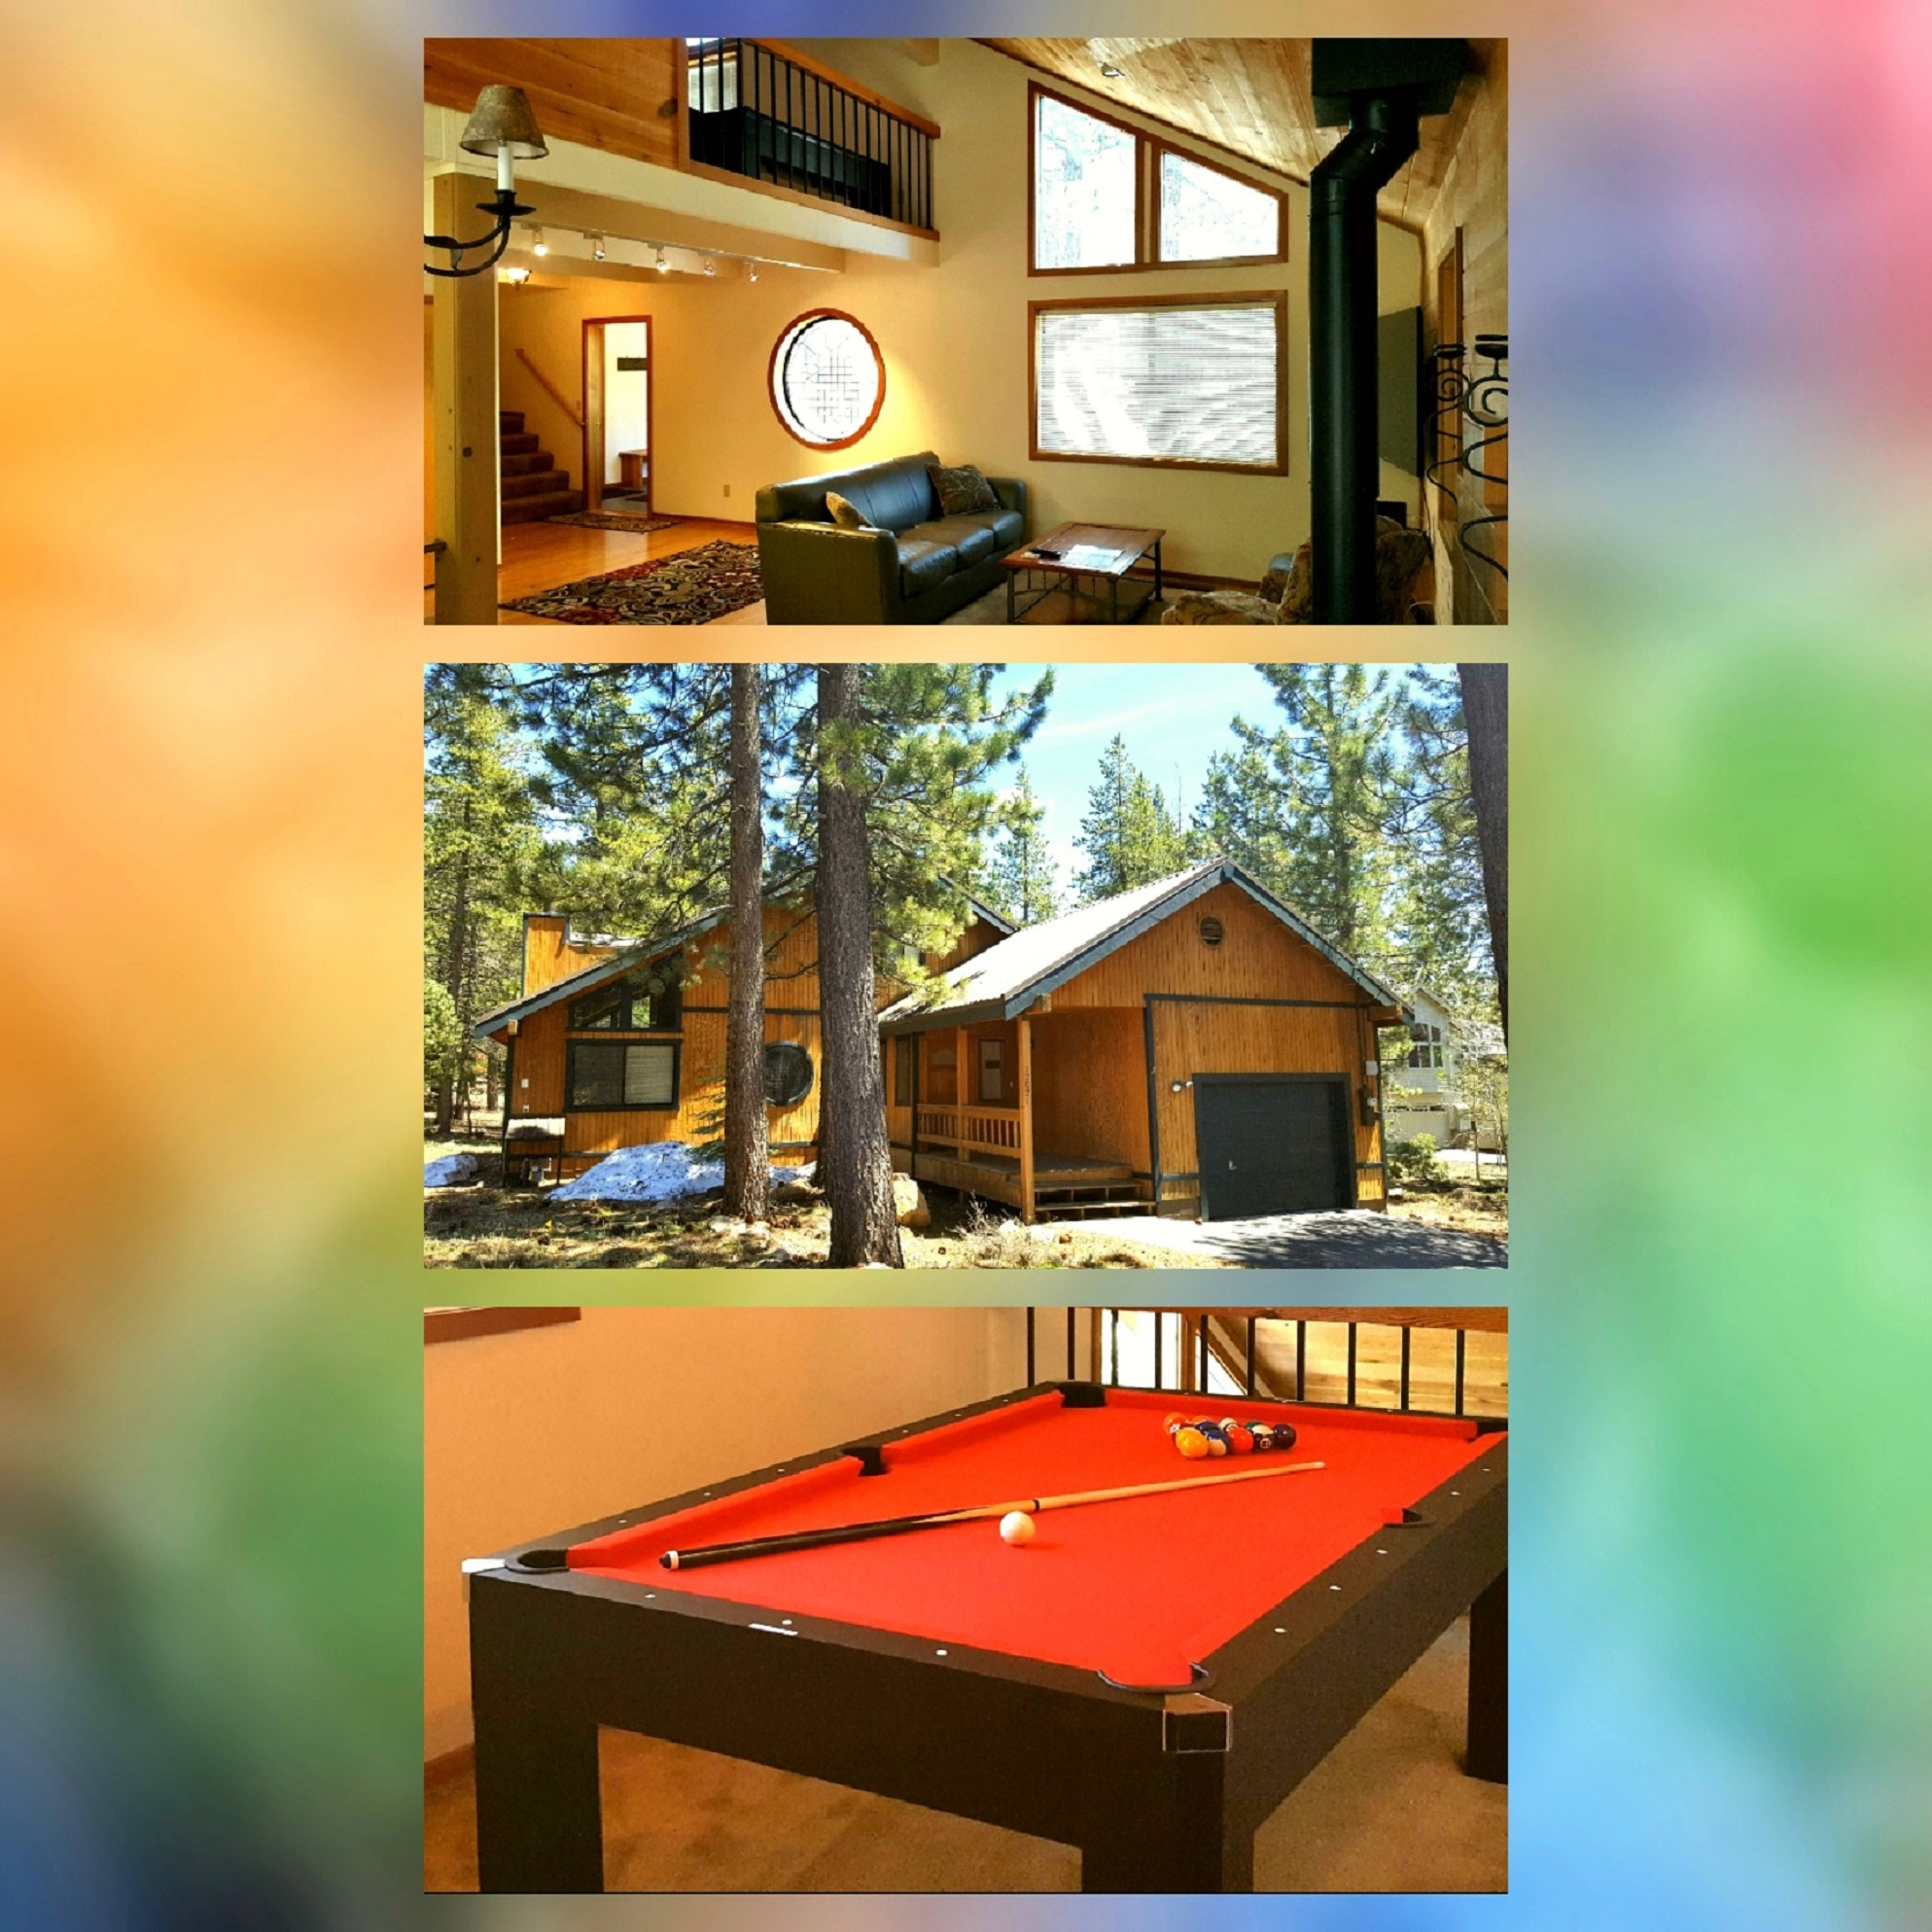 out ski lake luxury bath lodge prop large pool indoor at rental group heavenly acres movie house with tahoe rentals bedroom powder on in cabins vacation